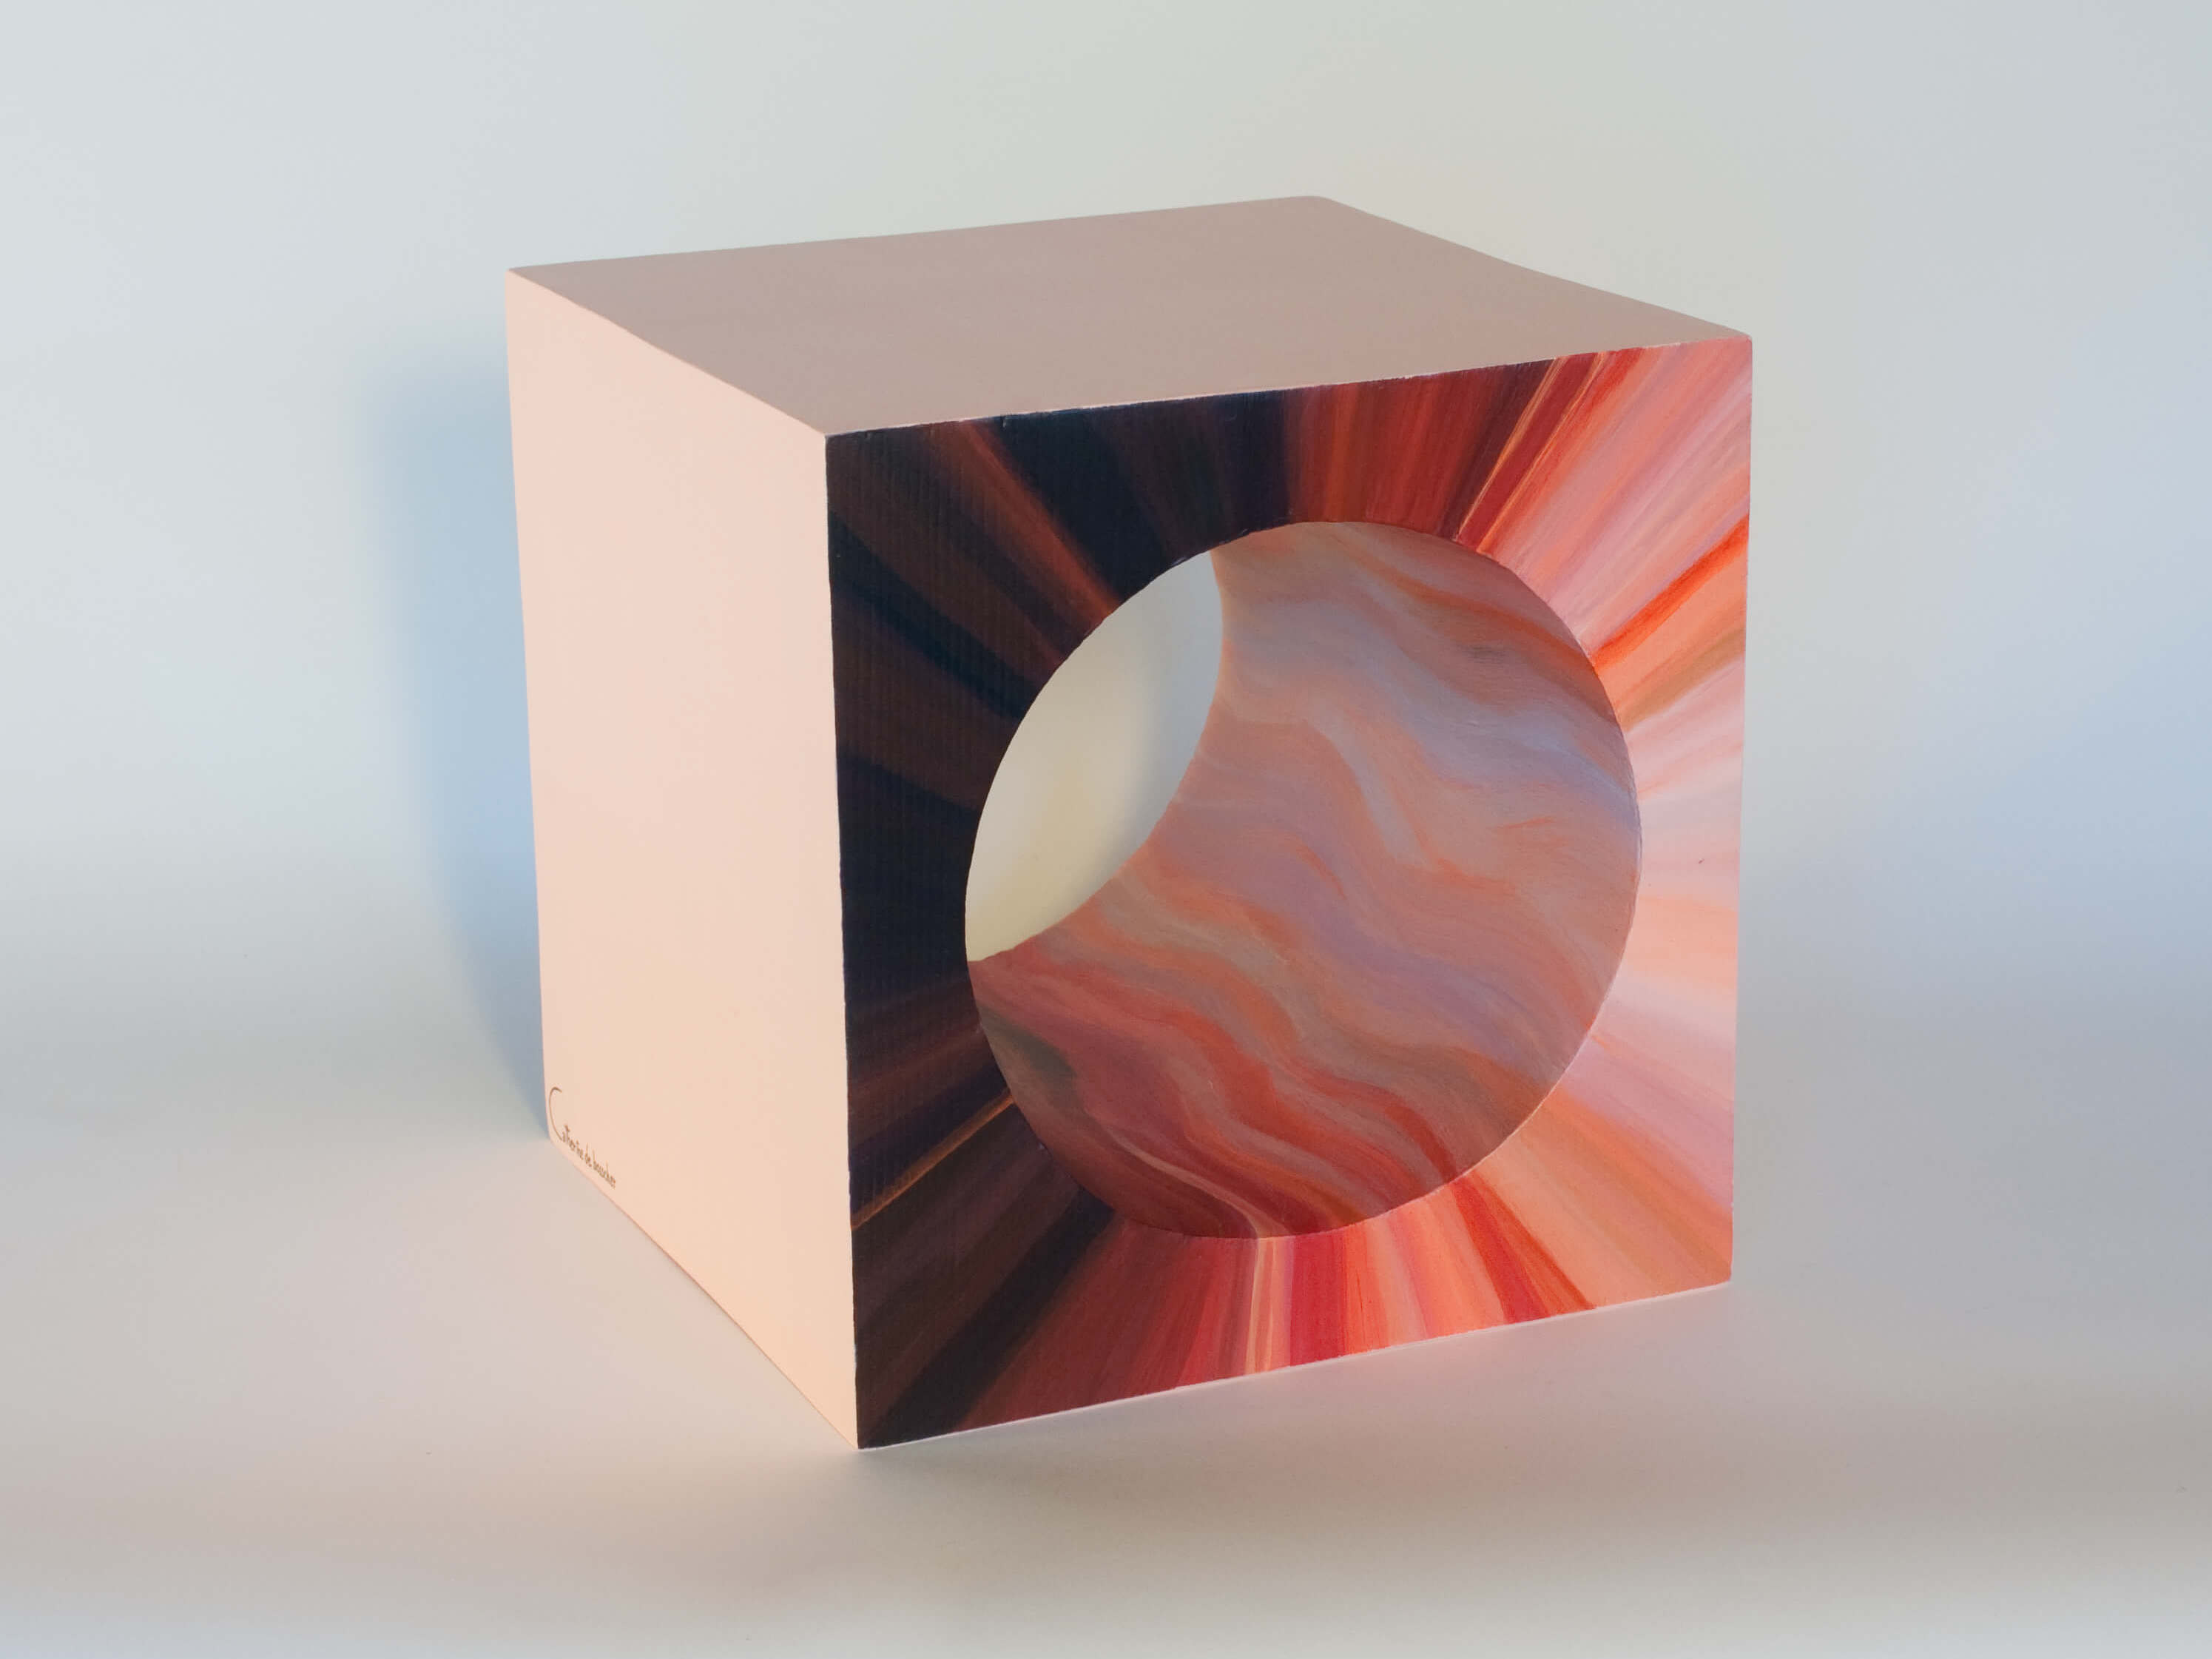 Sculpture MAGMA CUBE by Catherine De Bosscher